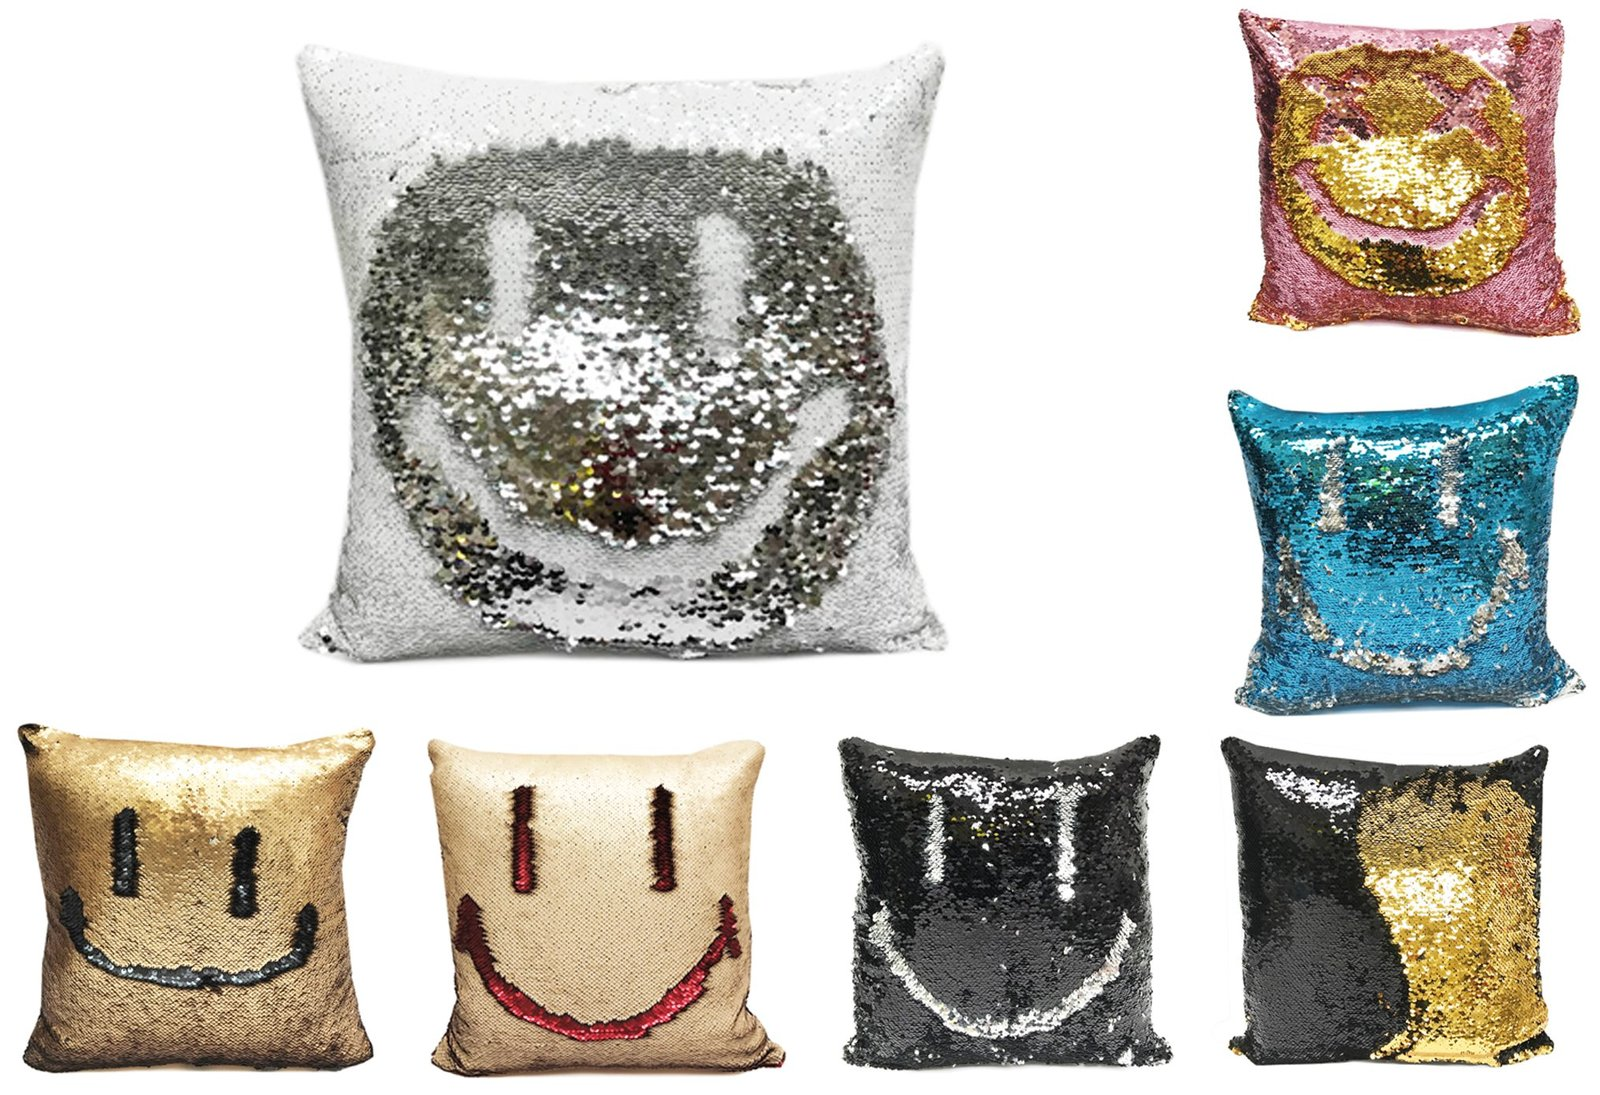 "Fennco Styles Glam Mermaid Sequin Throw Pillow - 16""x16"" (Cover + Insert, Matt G"